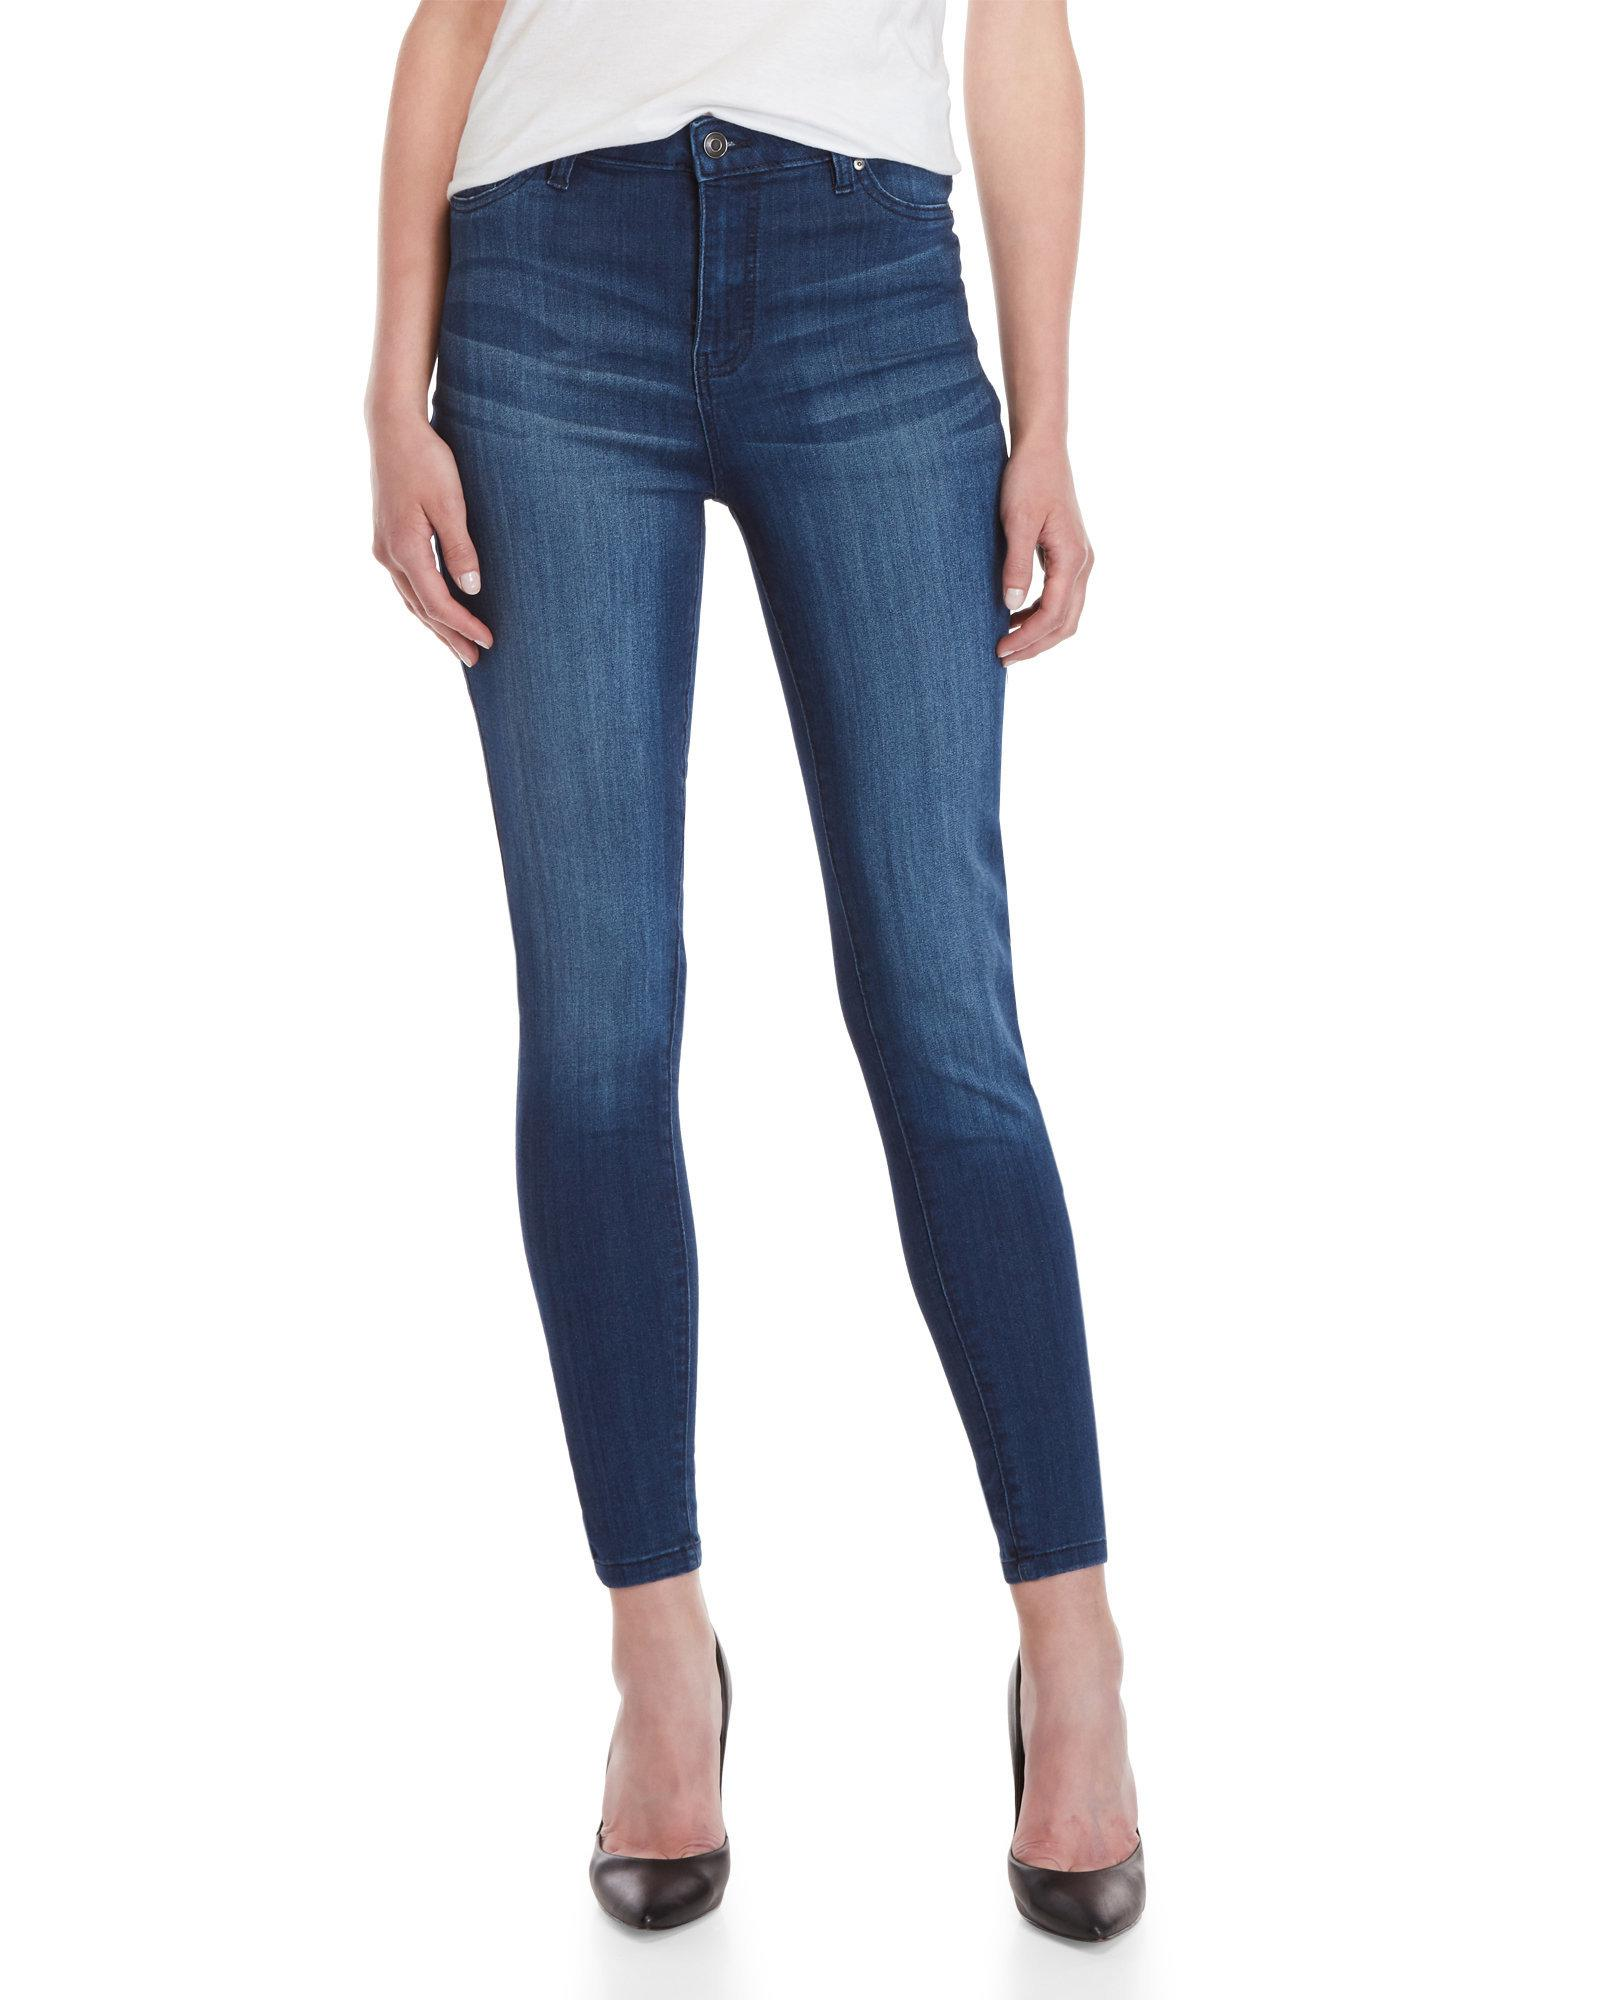 CELEBRITY PINK WOMANS 24 ANKLE SKINNY RUST STRETCH DRESS JEANS//PANTS NWT